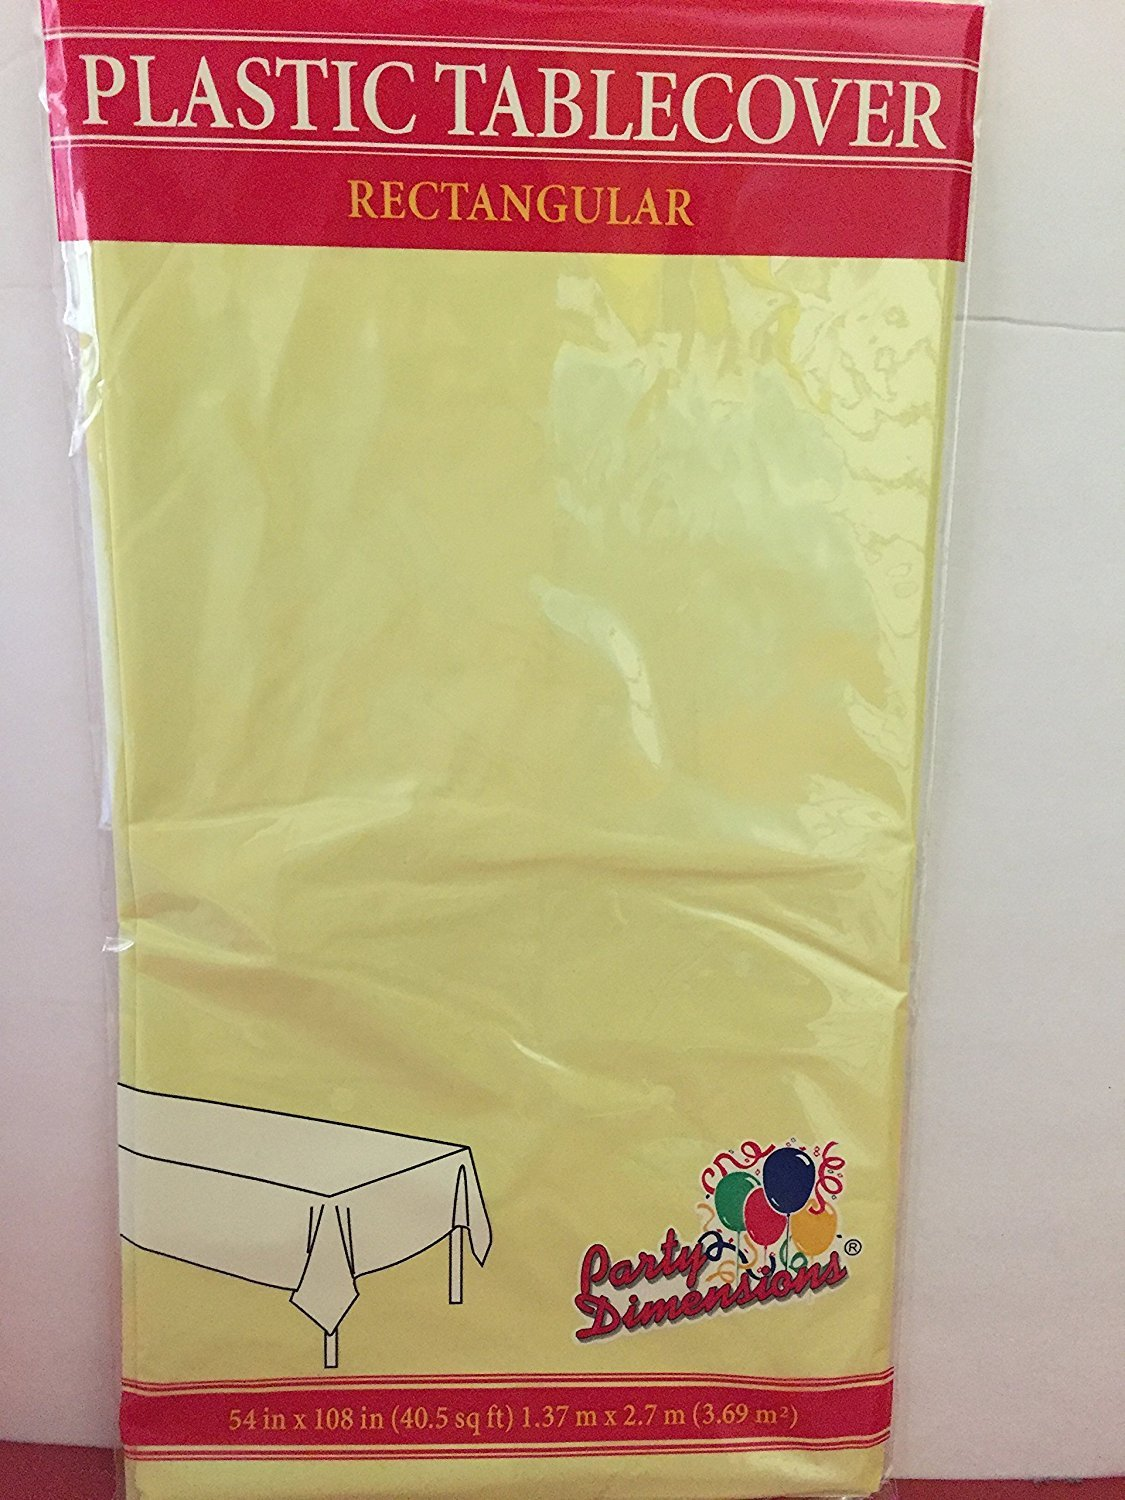 TABLECLOTHS GOLD YELLOW 3-PACK DISPOSABLE PLASTIC TABLE COVERS SYNCHKG064391